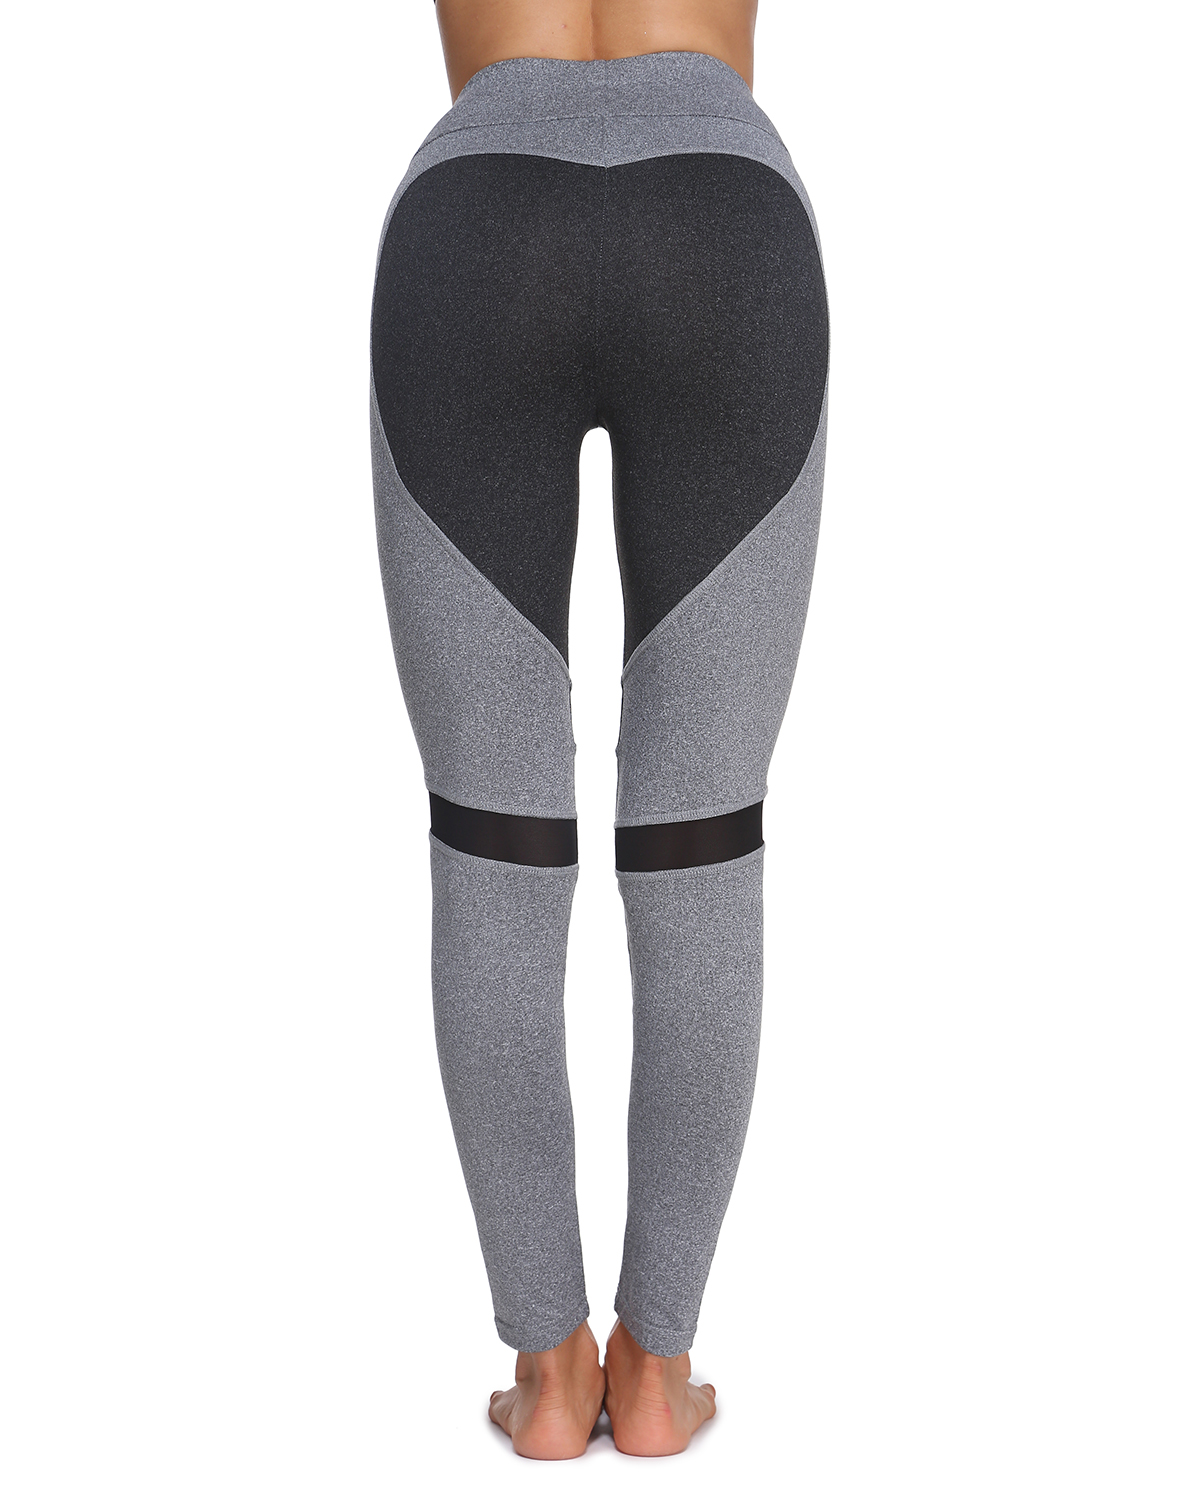 ede602ed73145a *Median waist leggings with pocket perfect for movement *Great for yoga,  sport, lounge, casual, workout, any other activewear. Detail : •Brand  :Belleziva